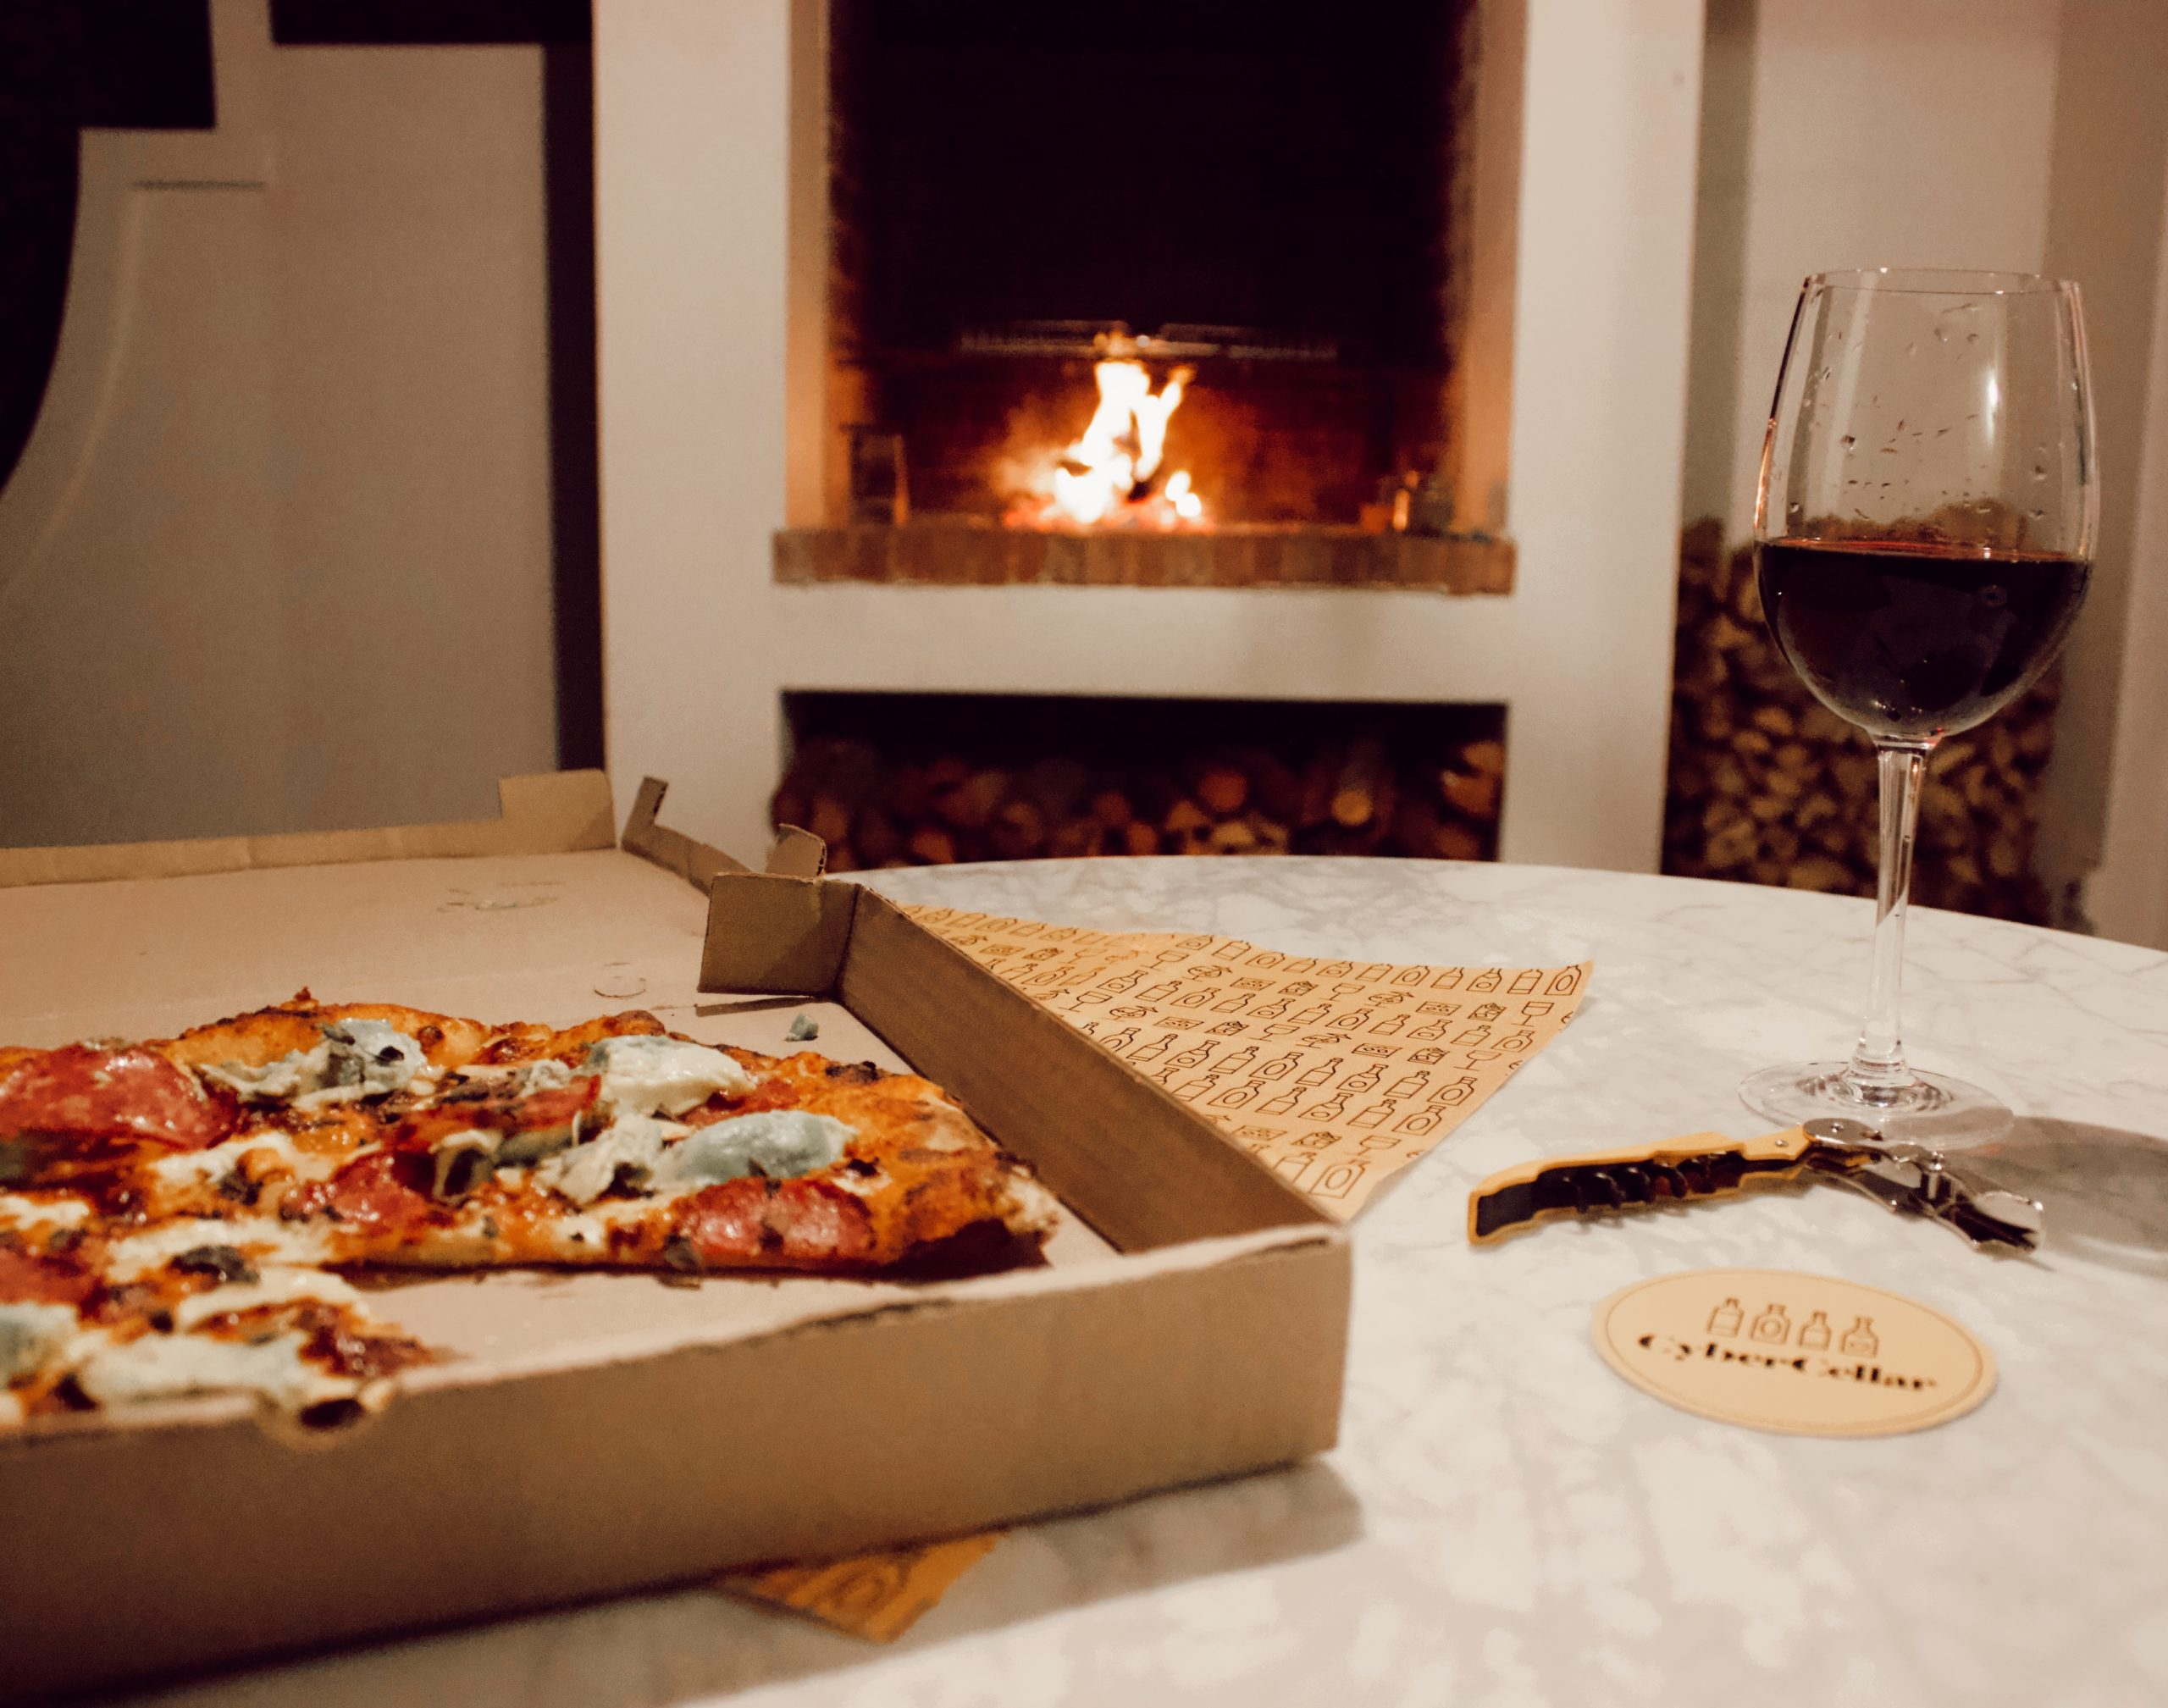 Wait, I can pair my wine with my pizza topping?